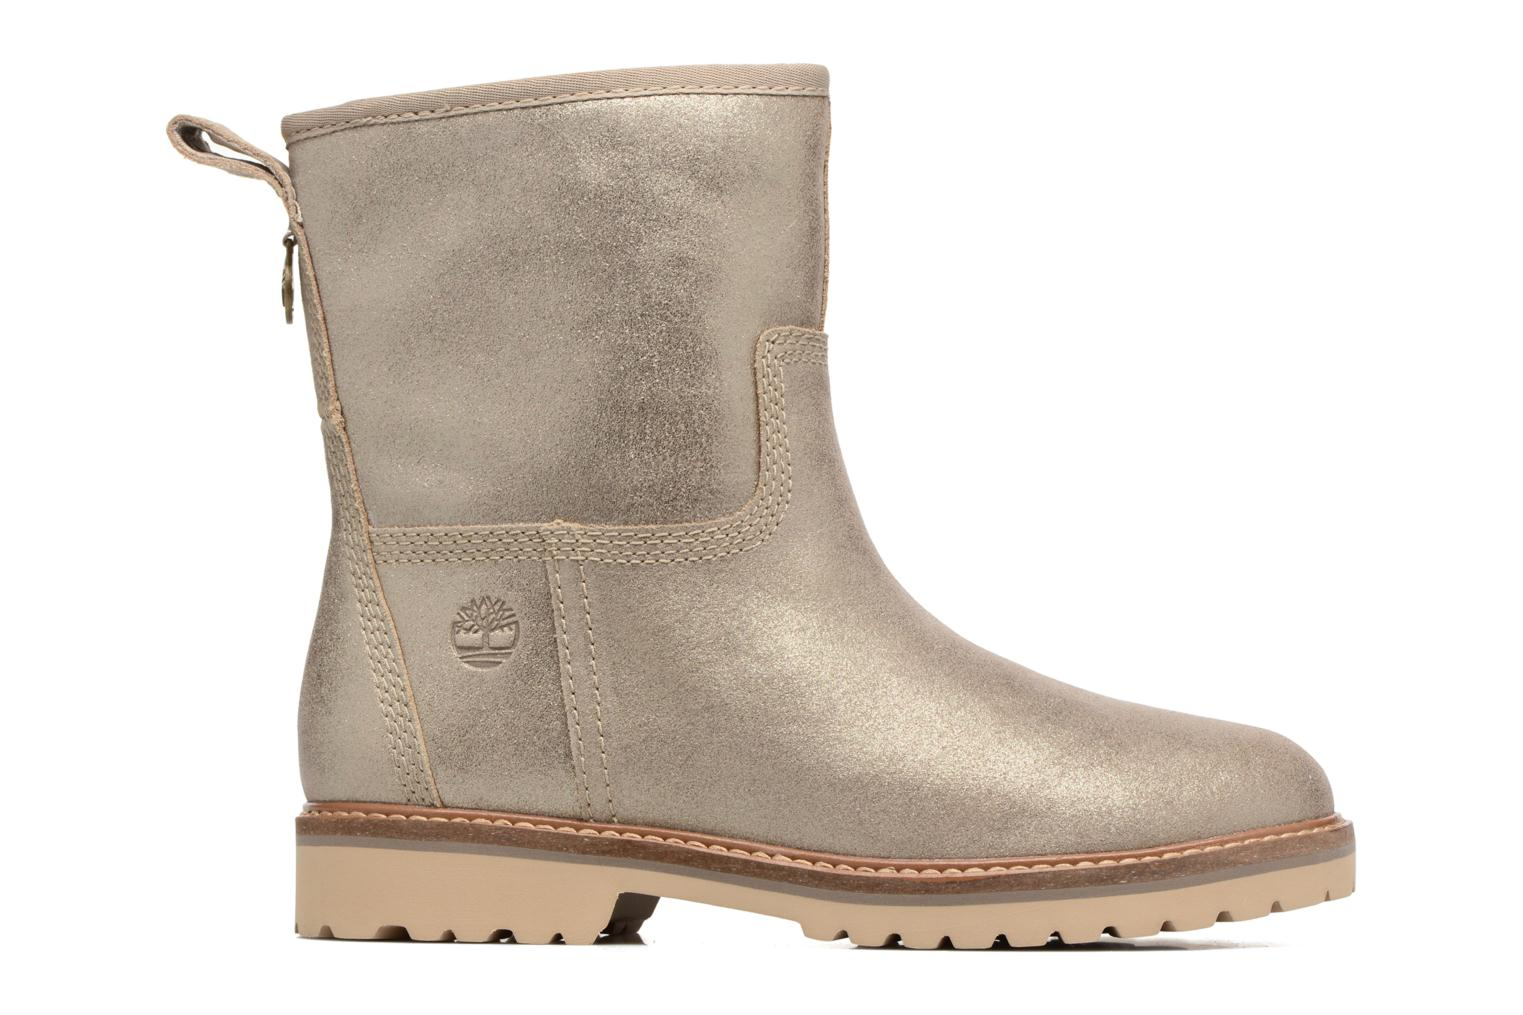 Chamonix Valley Winter Boot Gold Shiny Suede